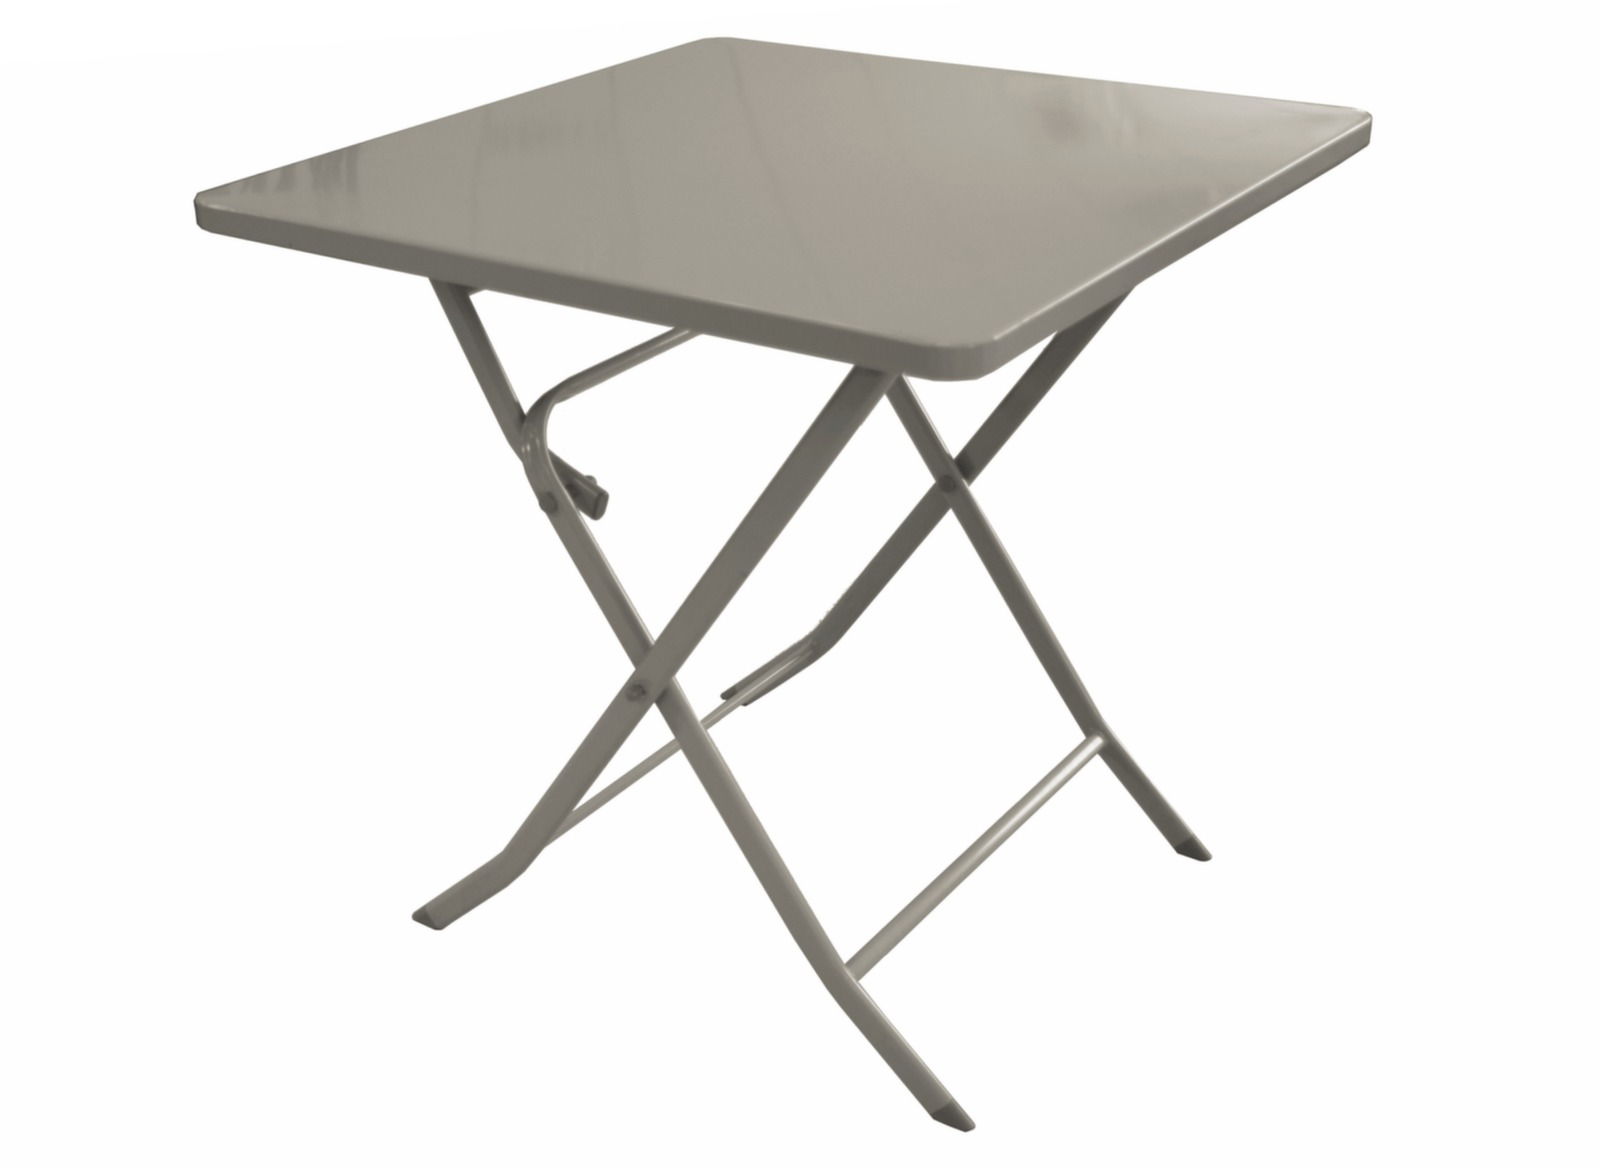 Table de jardin pliante en acier nonza 70 x 70 cm proloisirs for Pietement de table pliante